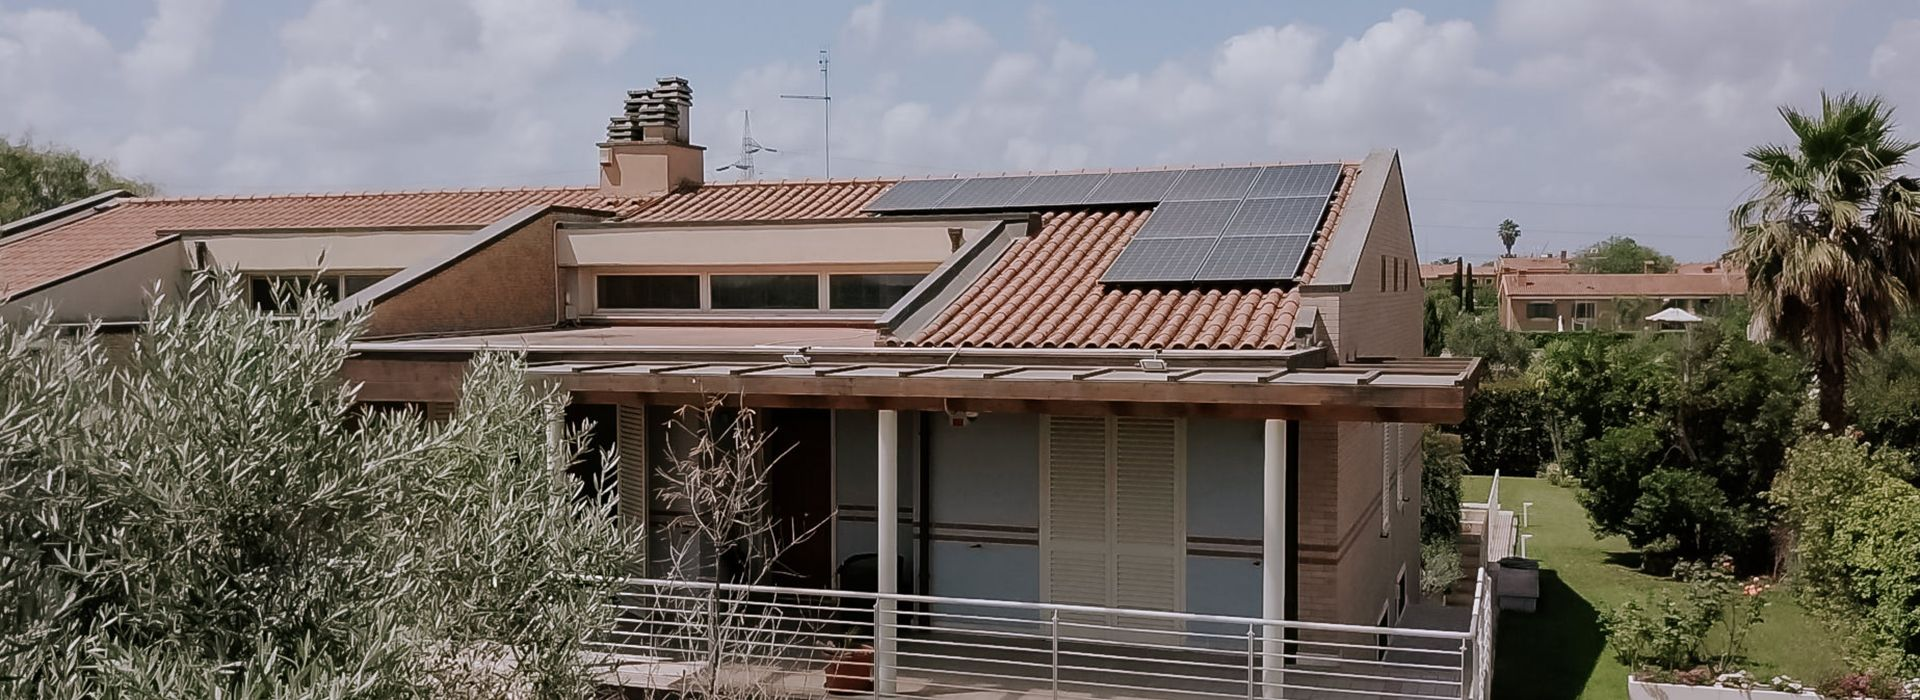 solar panels on residential home roof